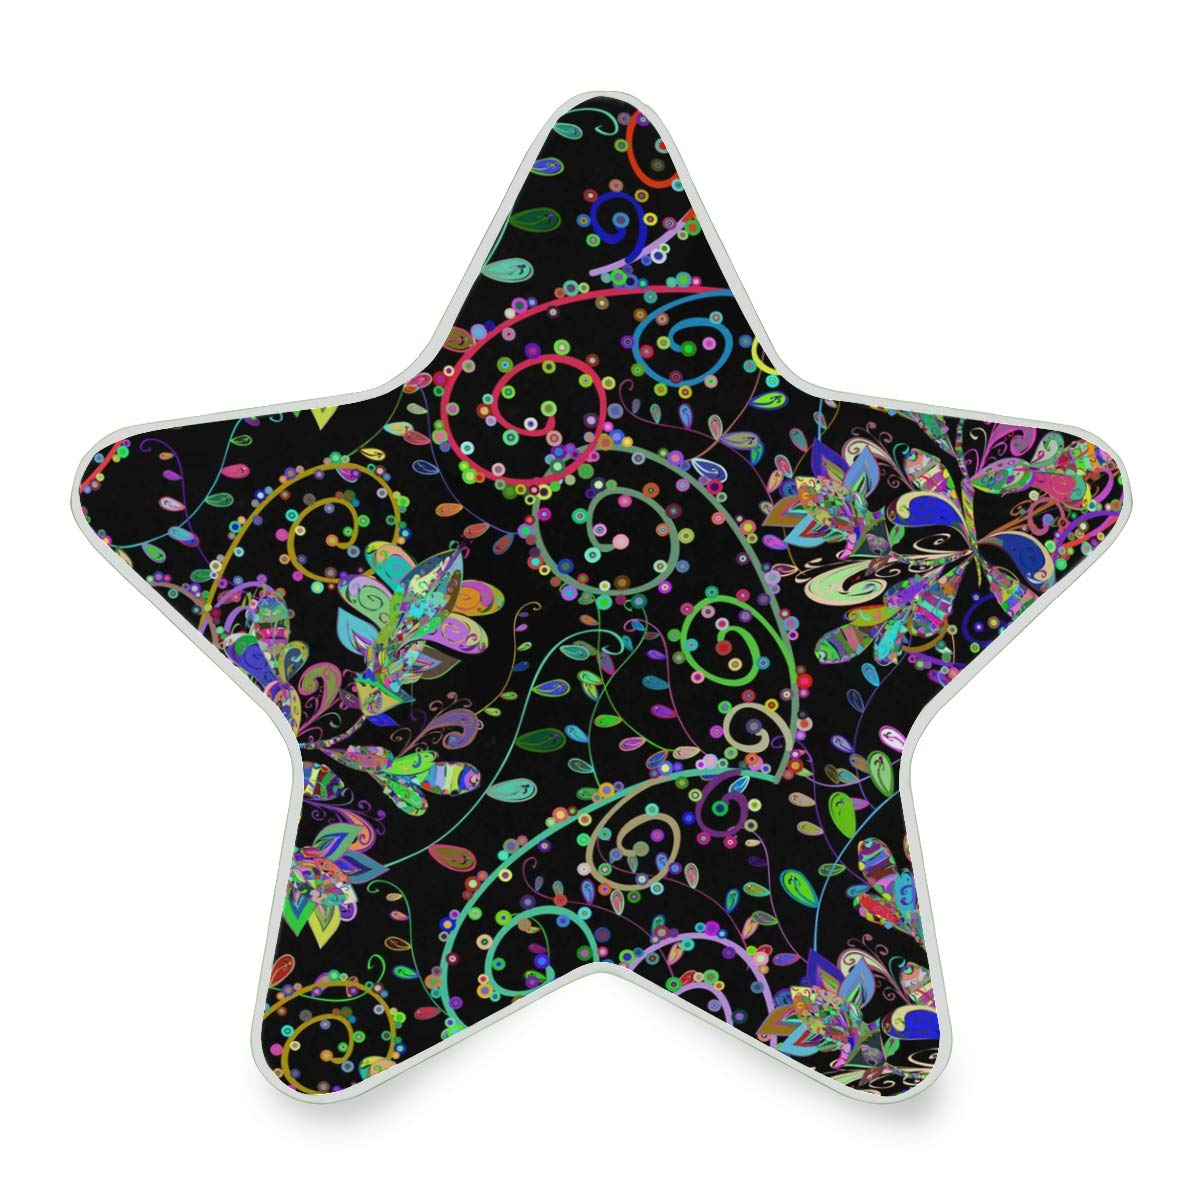 LED Night Light Seamless Texture On Black Background Nightlight Decorative Star Pentagram Shaped Plug in for Kids Baby Girls Boys Adults Room